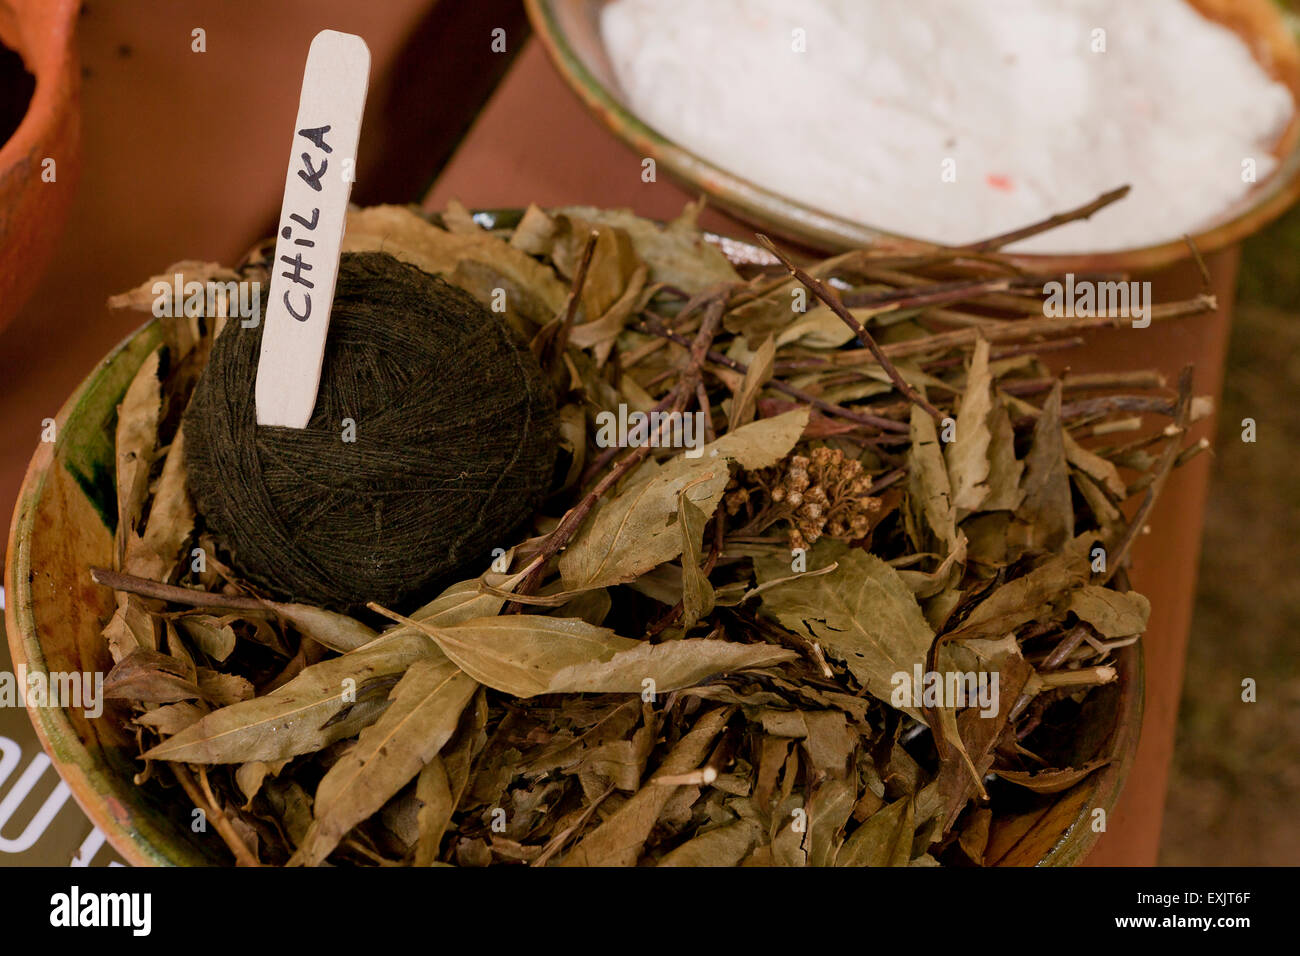 Chil Ka, Peruvian plant used in natural dyeing process of yarn - Stock Image